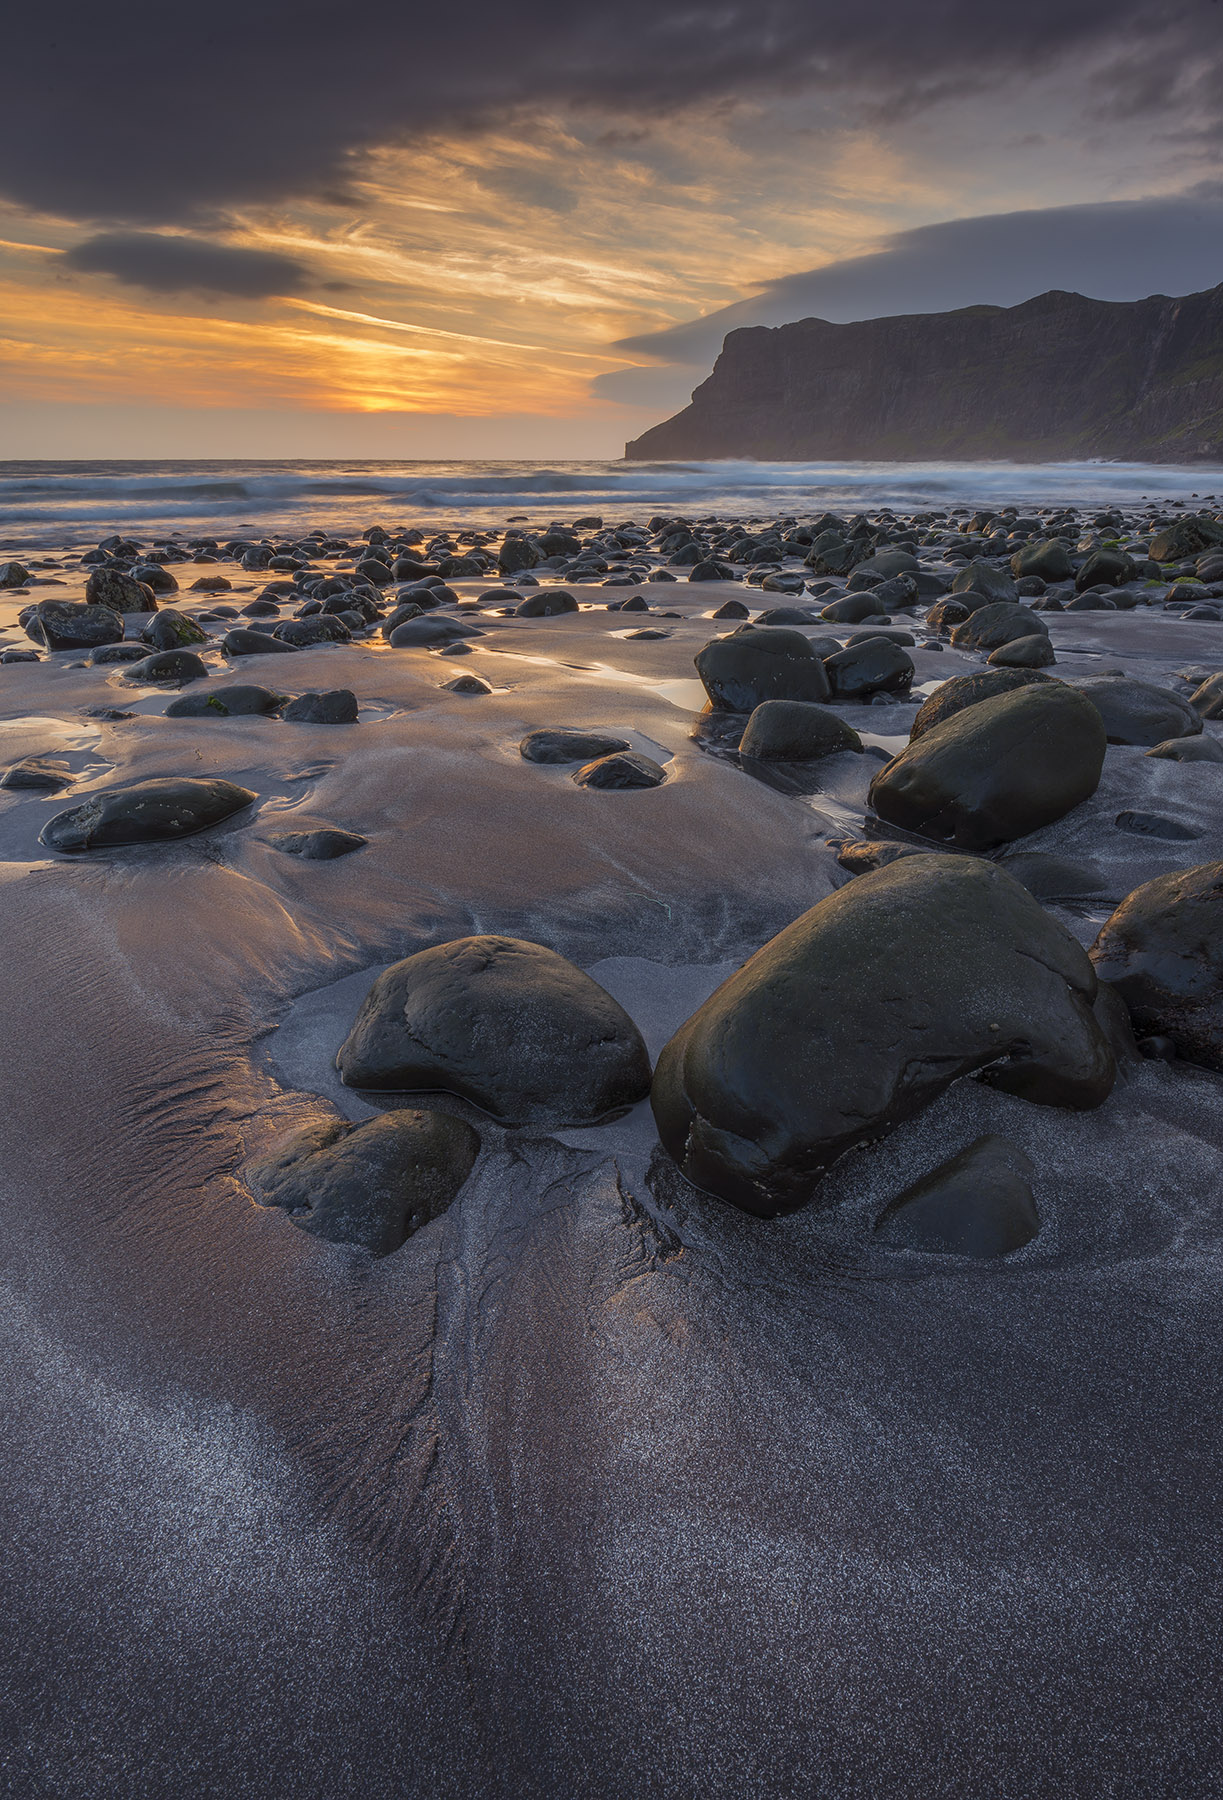 Talisker bay at dusk